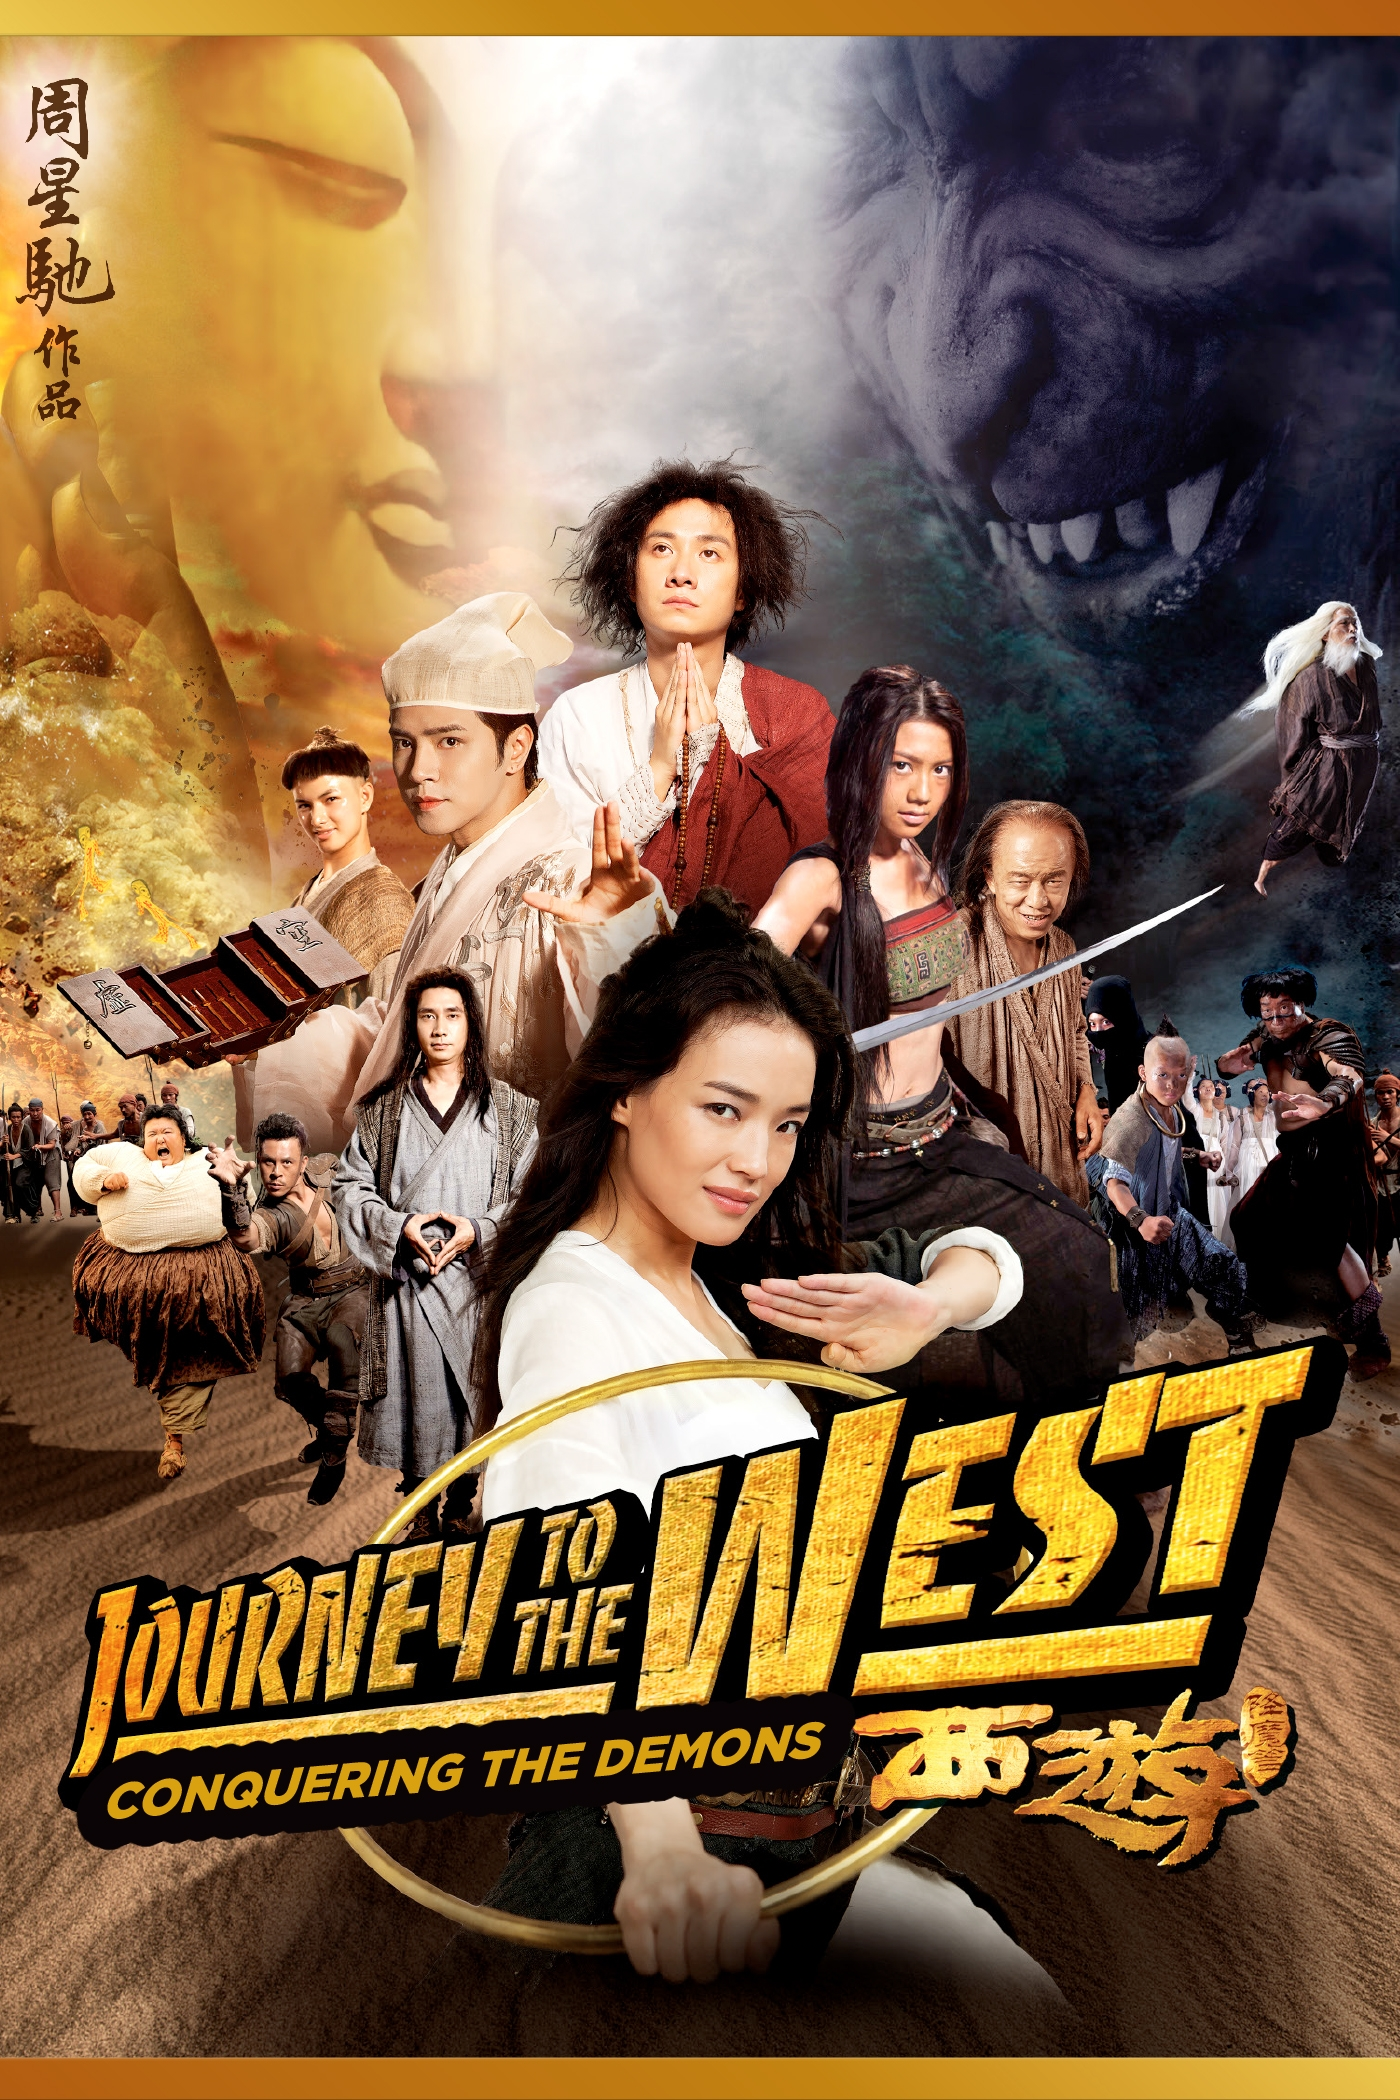 journey to the west conquering demons ending relationship